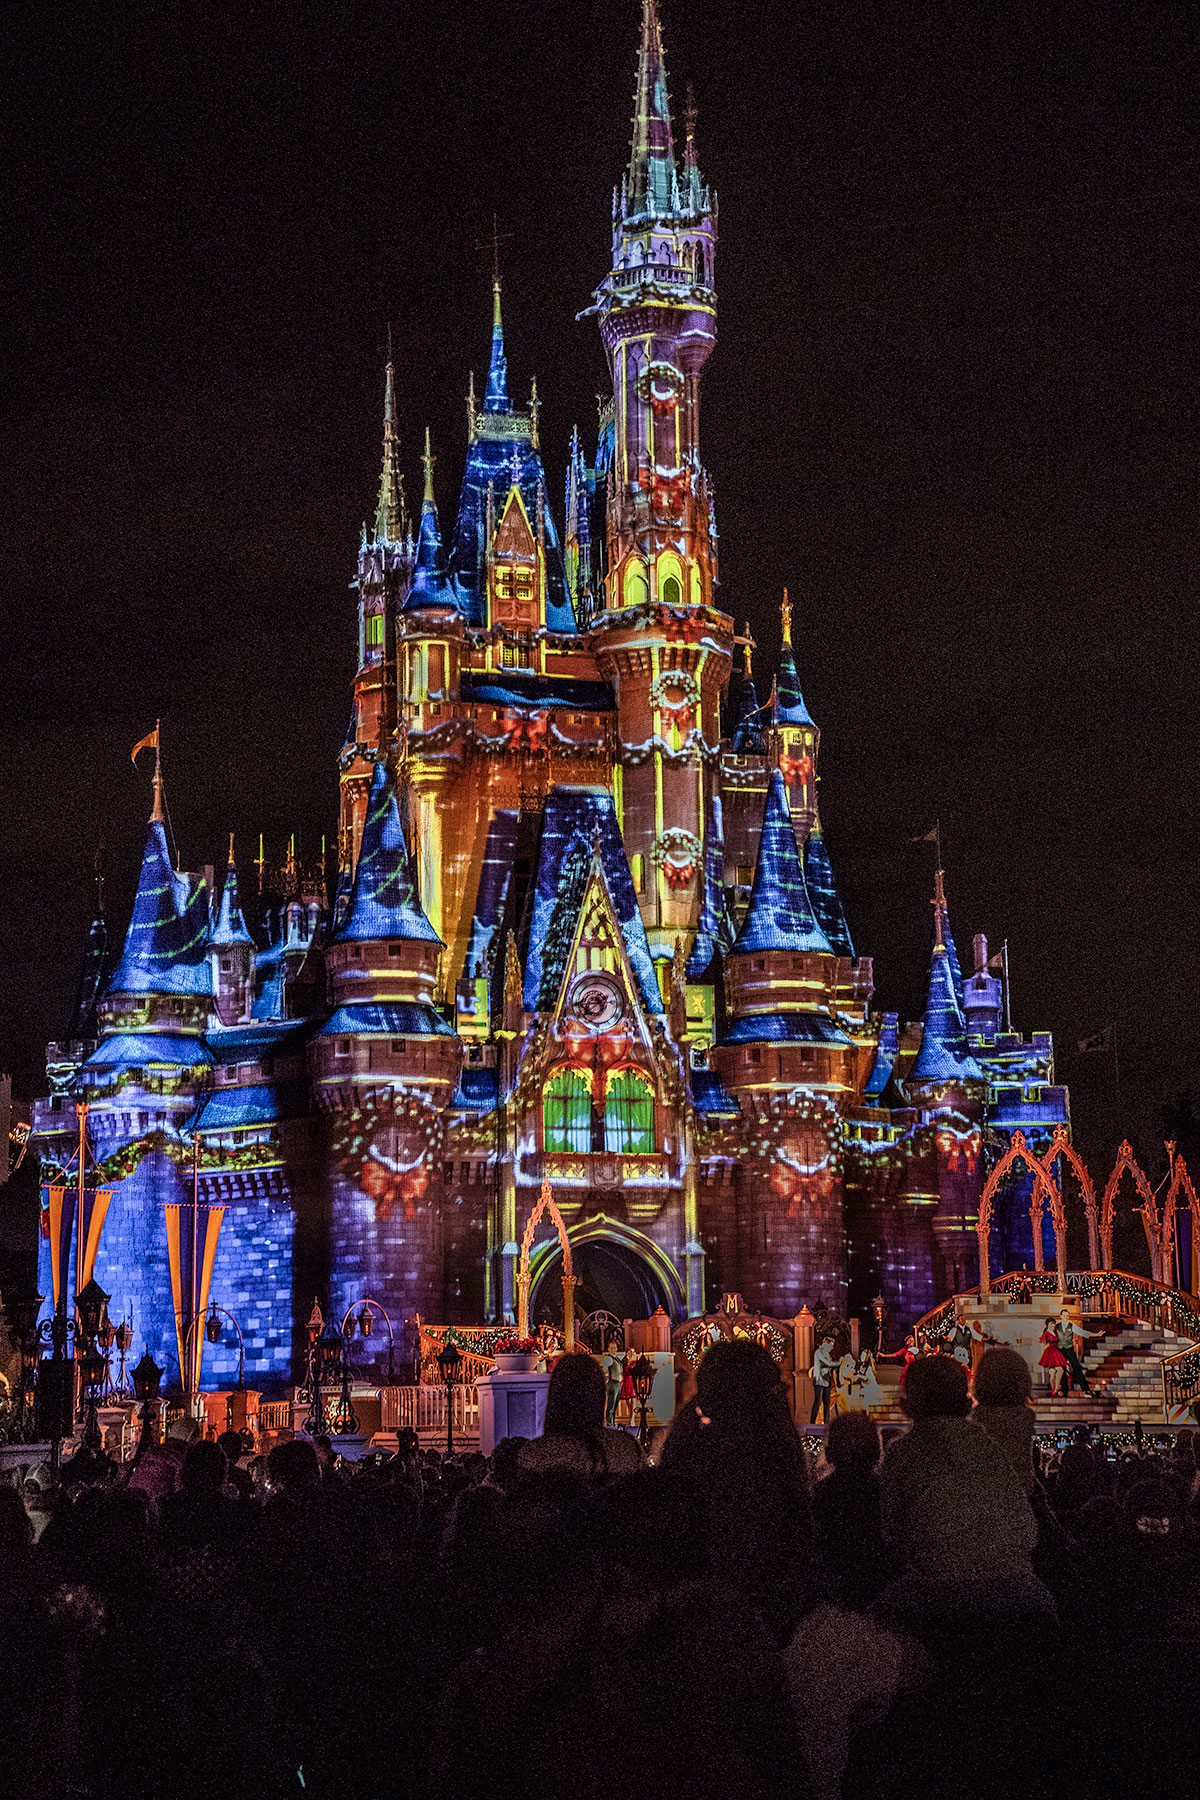 Cinderella-Castle-at-night-at-Christmas-Walt-Disney-Magic-Kingdom